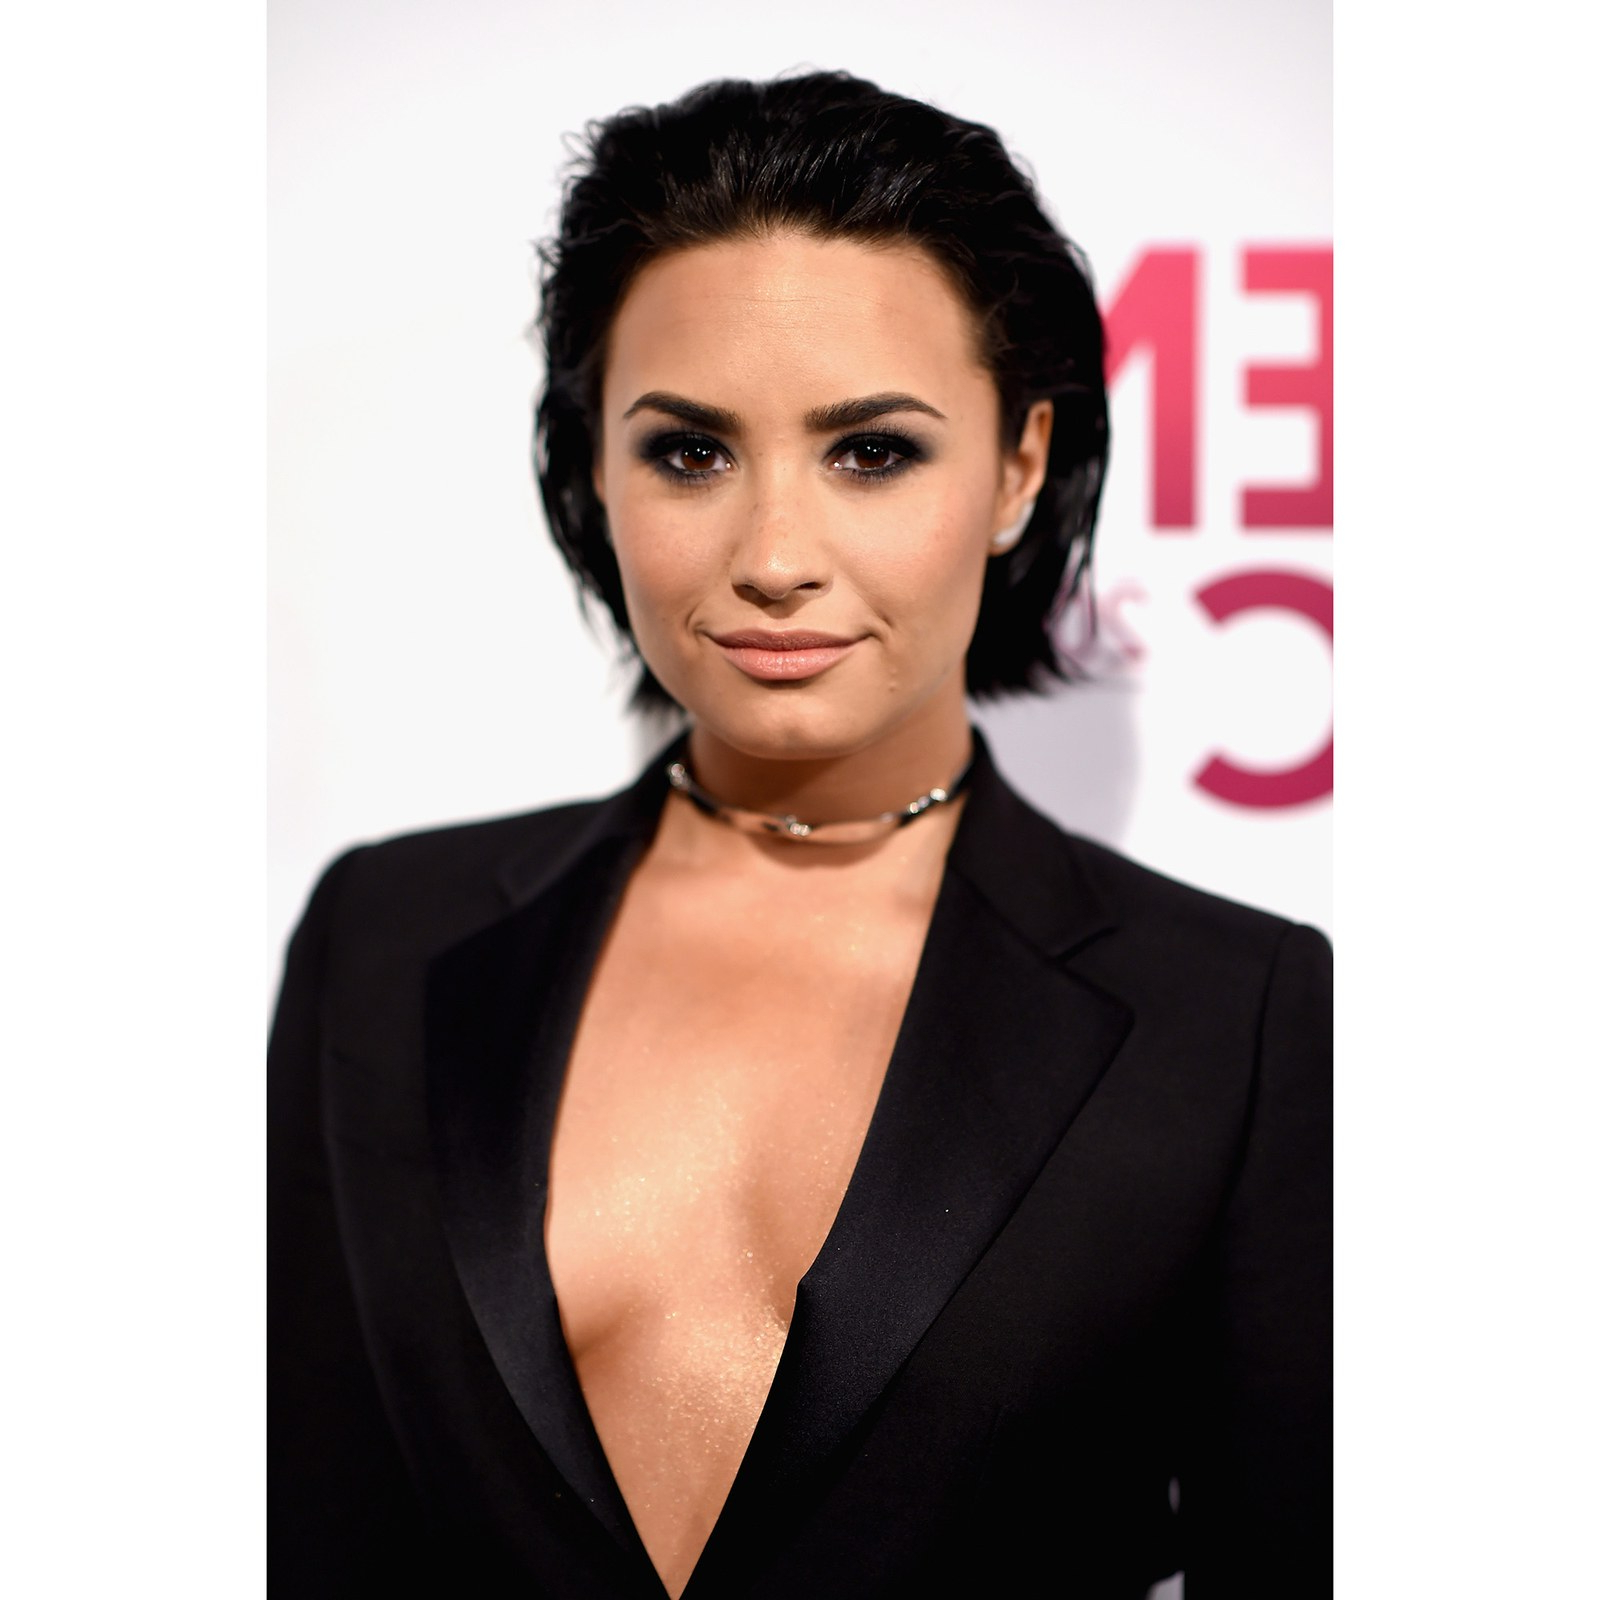 17 Short Haircuts And Hairstyles For Women 2017 – Allure Throughout Demi Lovato Short Haircuts (View 1 of 25)